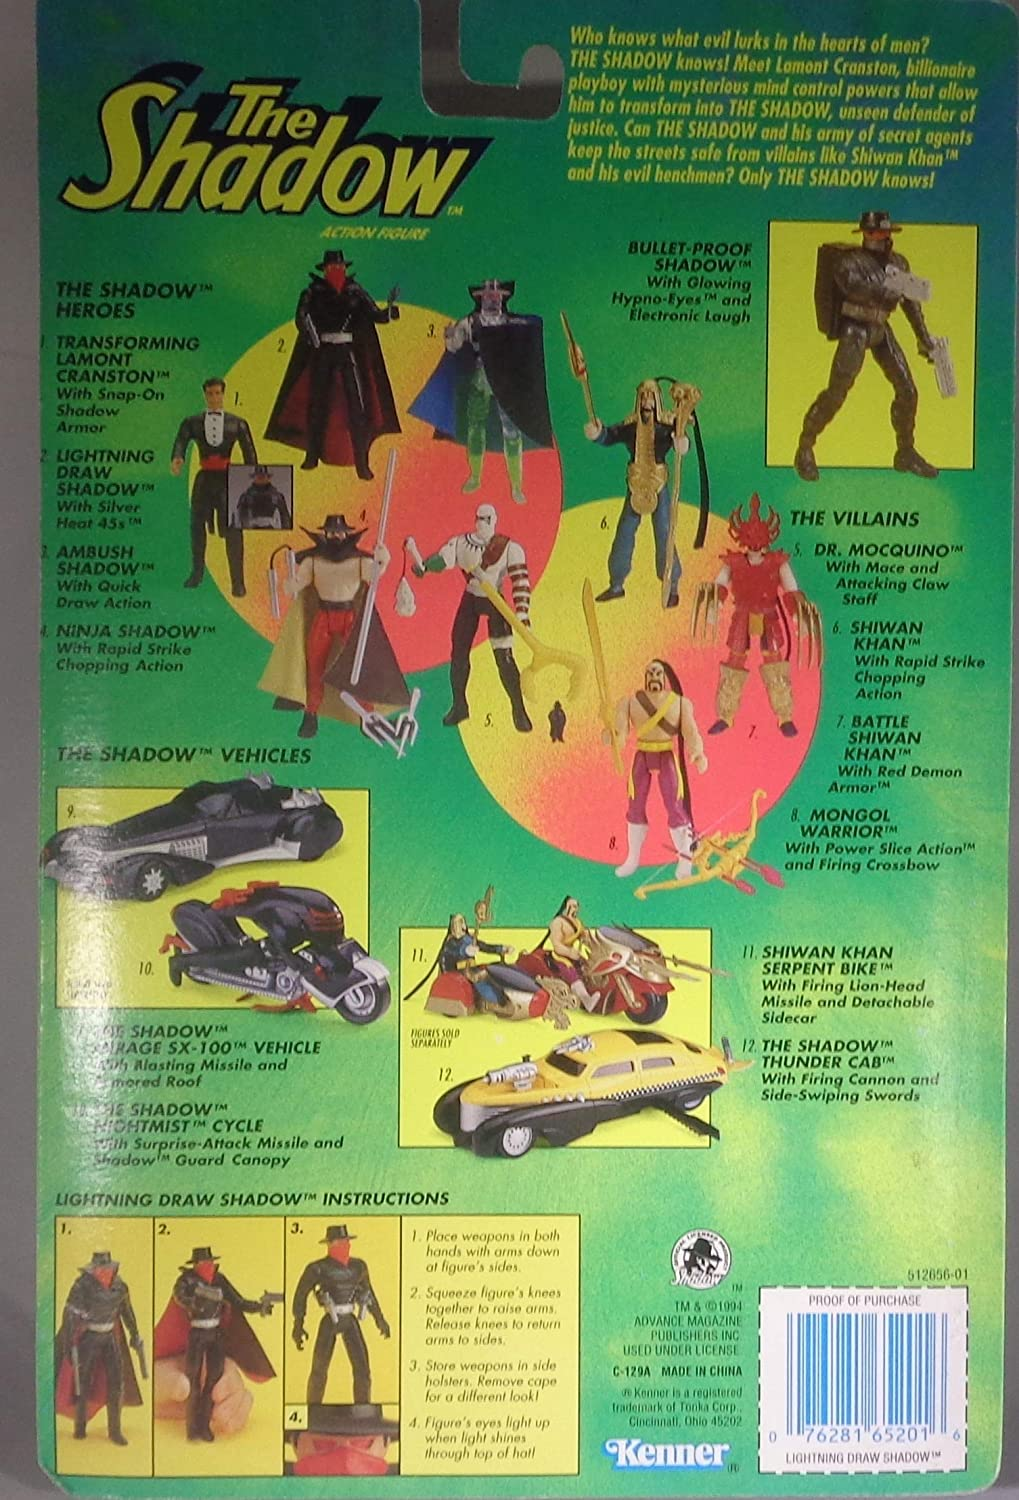 The Shadow Action Figure - Lightning Draw Shadow with Silver ...